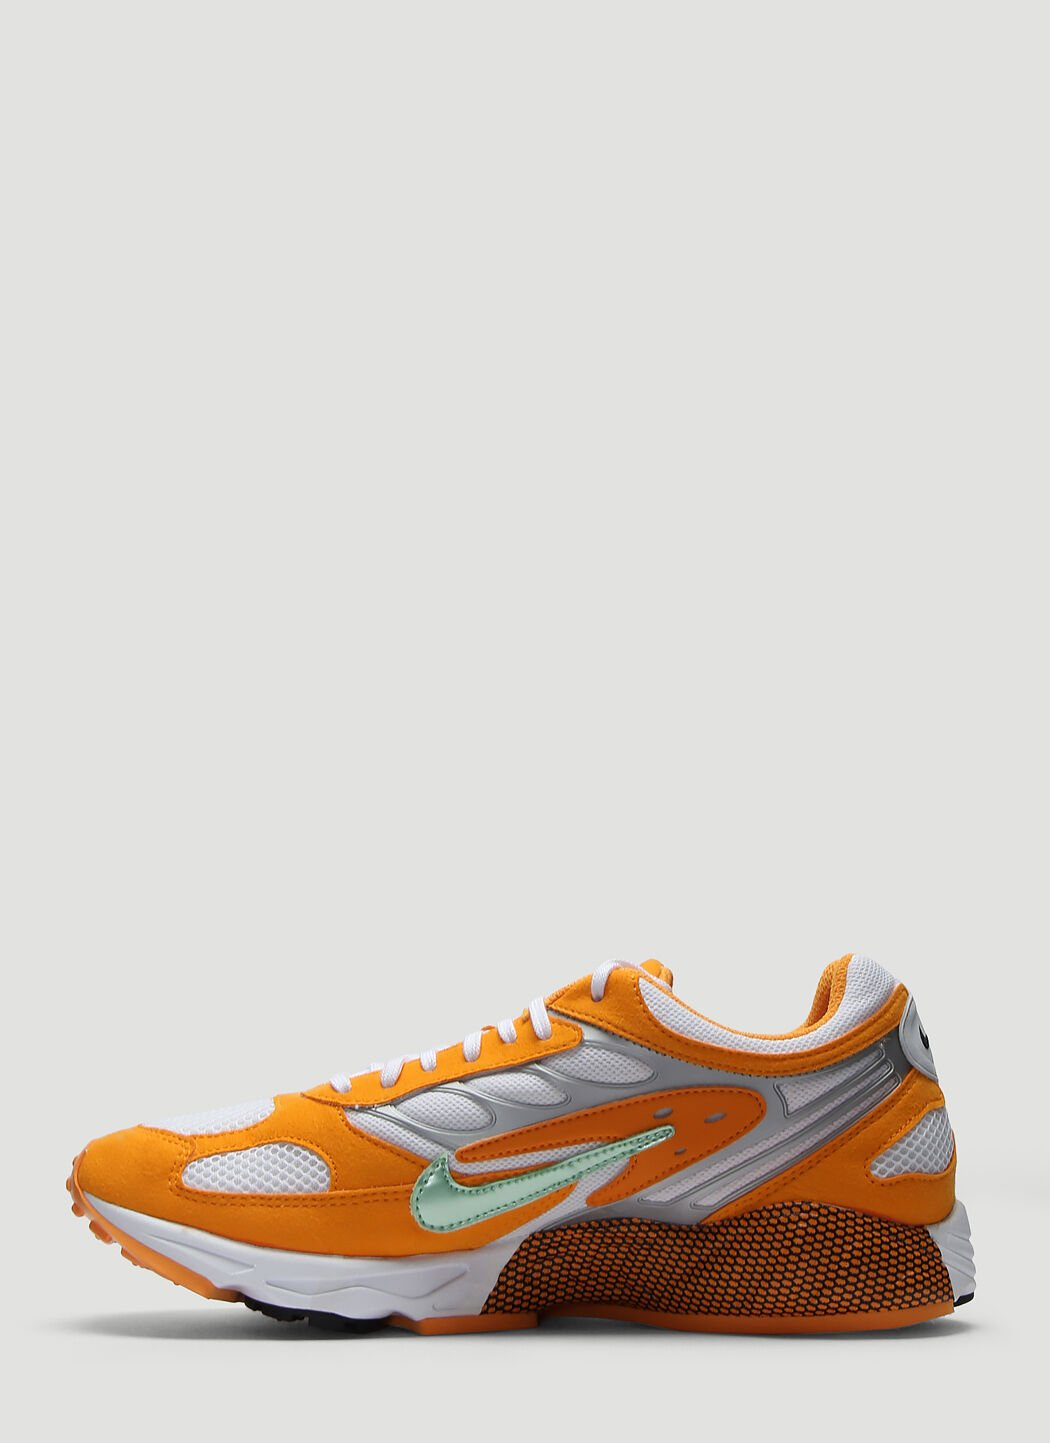 Nike Air Ghost Racer Sneakers in Orange | LN CC